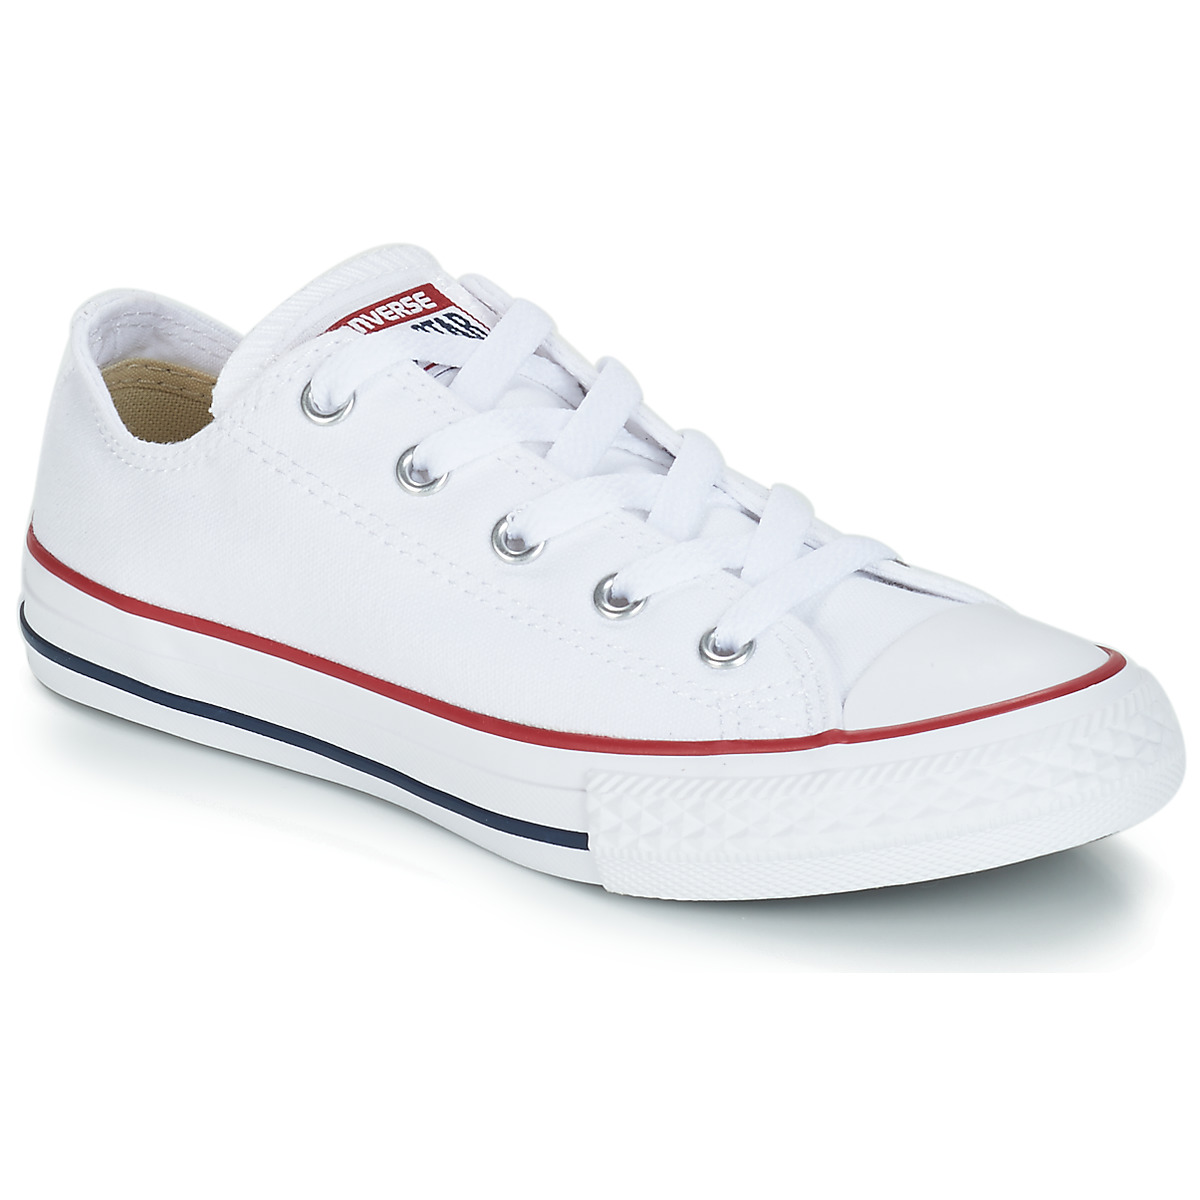 Converse Kids Chuck Taylor All Star Core Canvas Low Top Sneaker